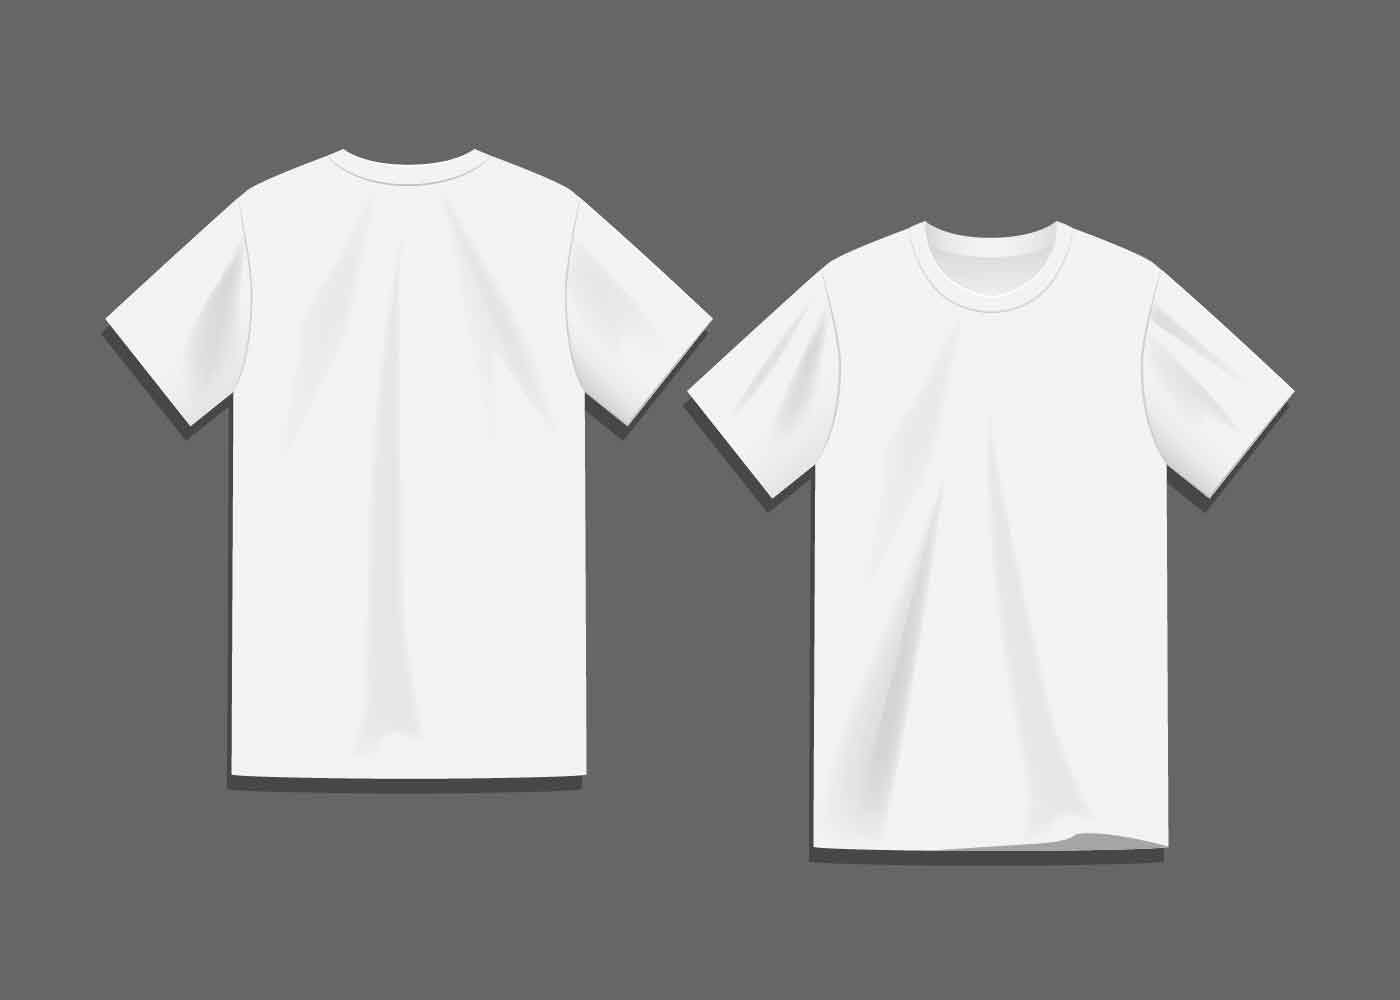 008 Sensational Plain T Shirt Template Idea  Blank Front And Back